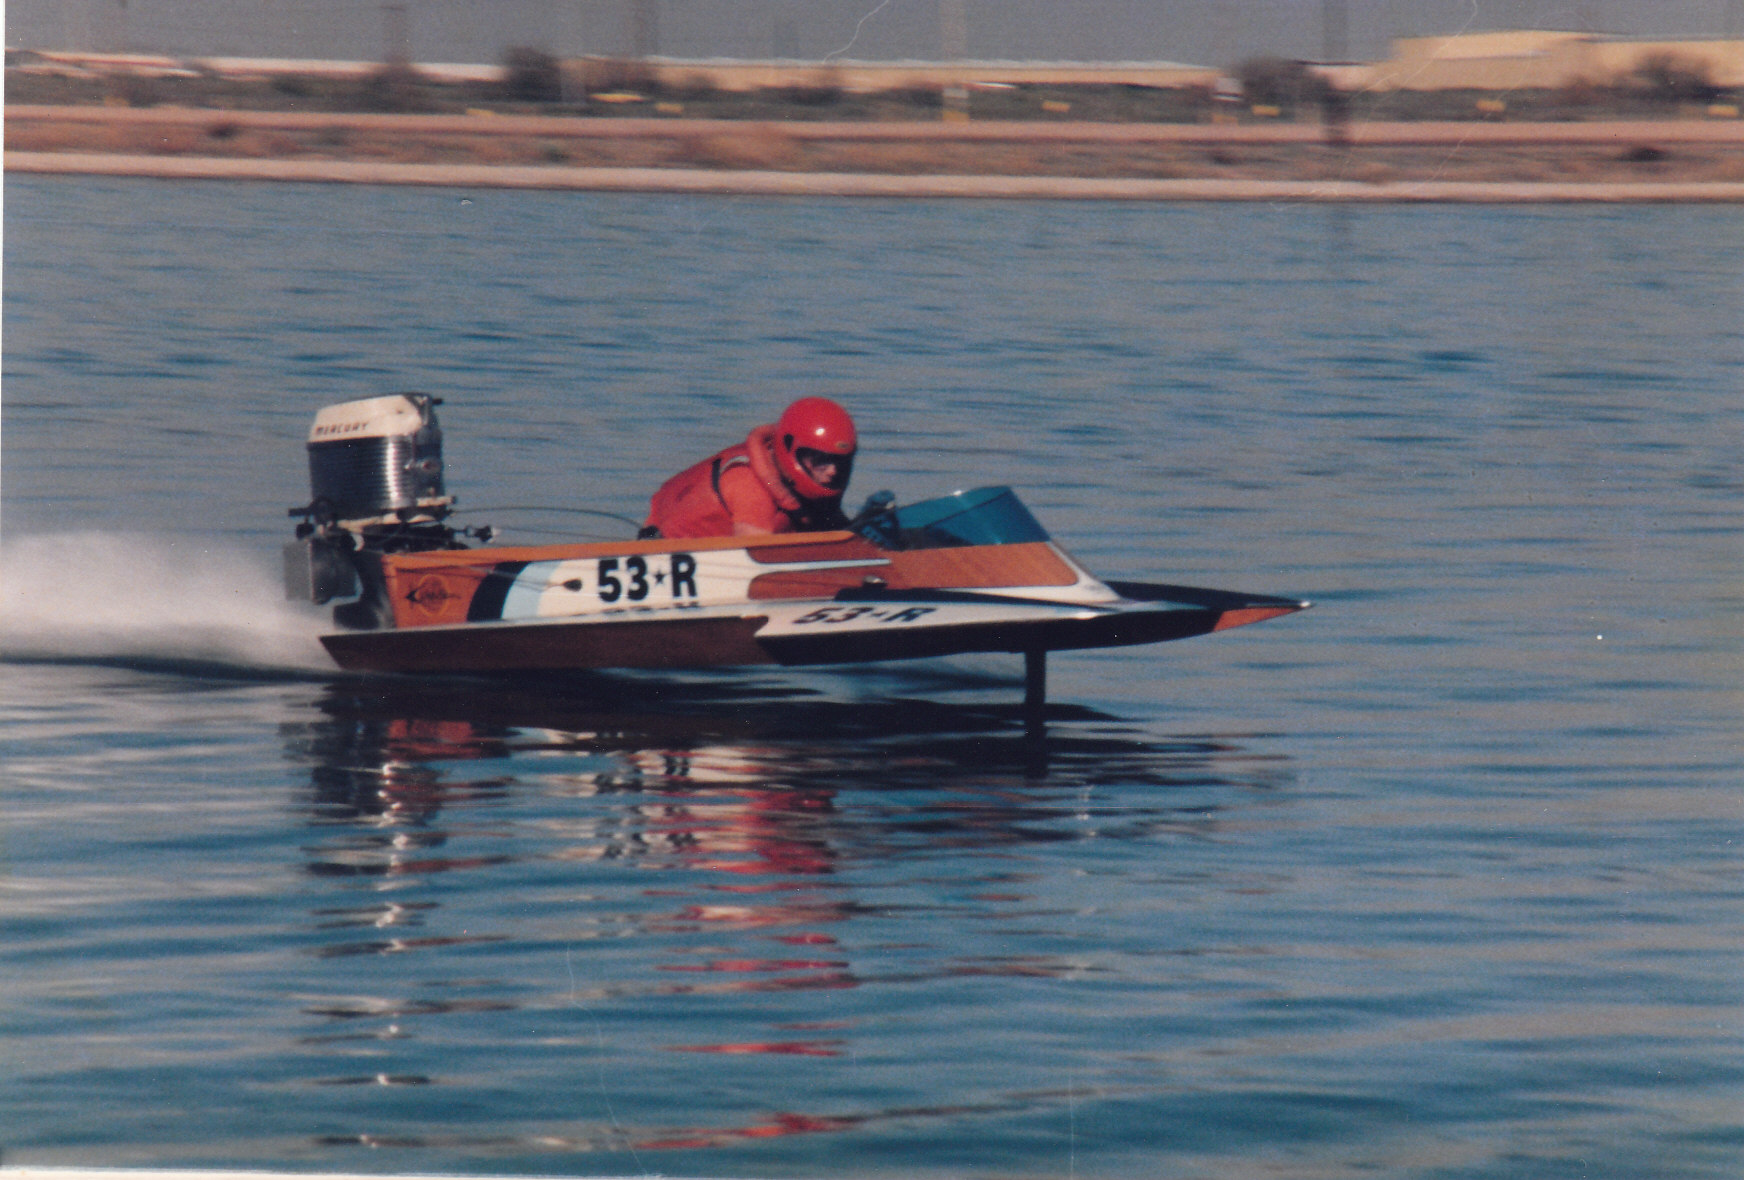 Winter_Nationals_1985